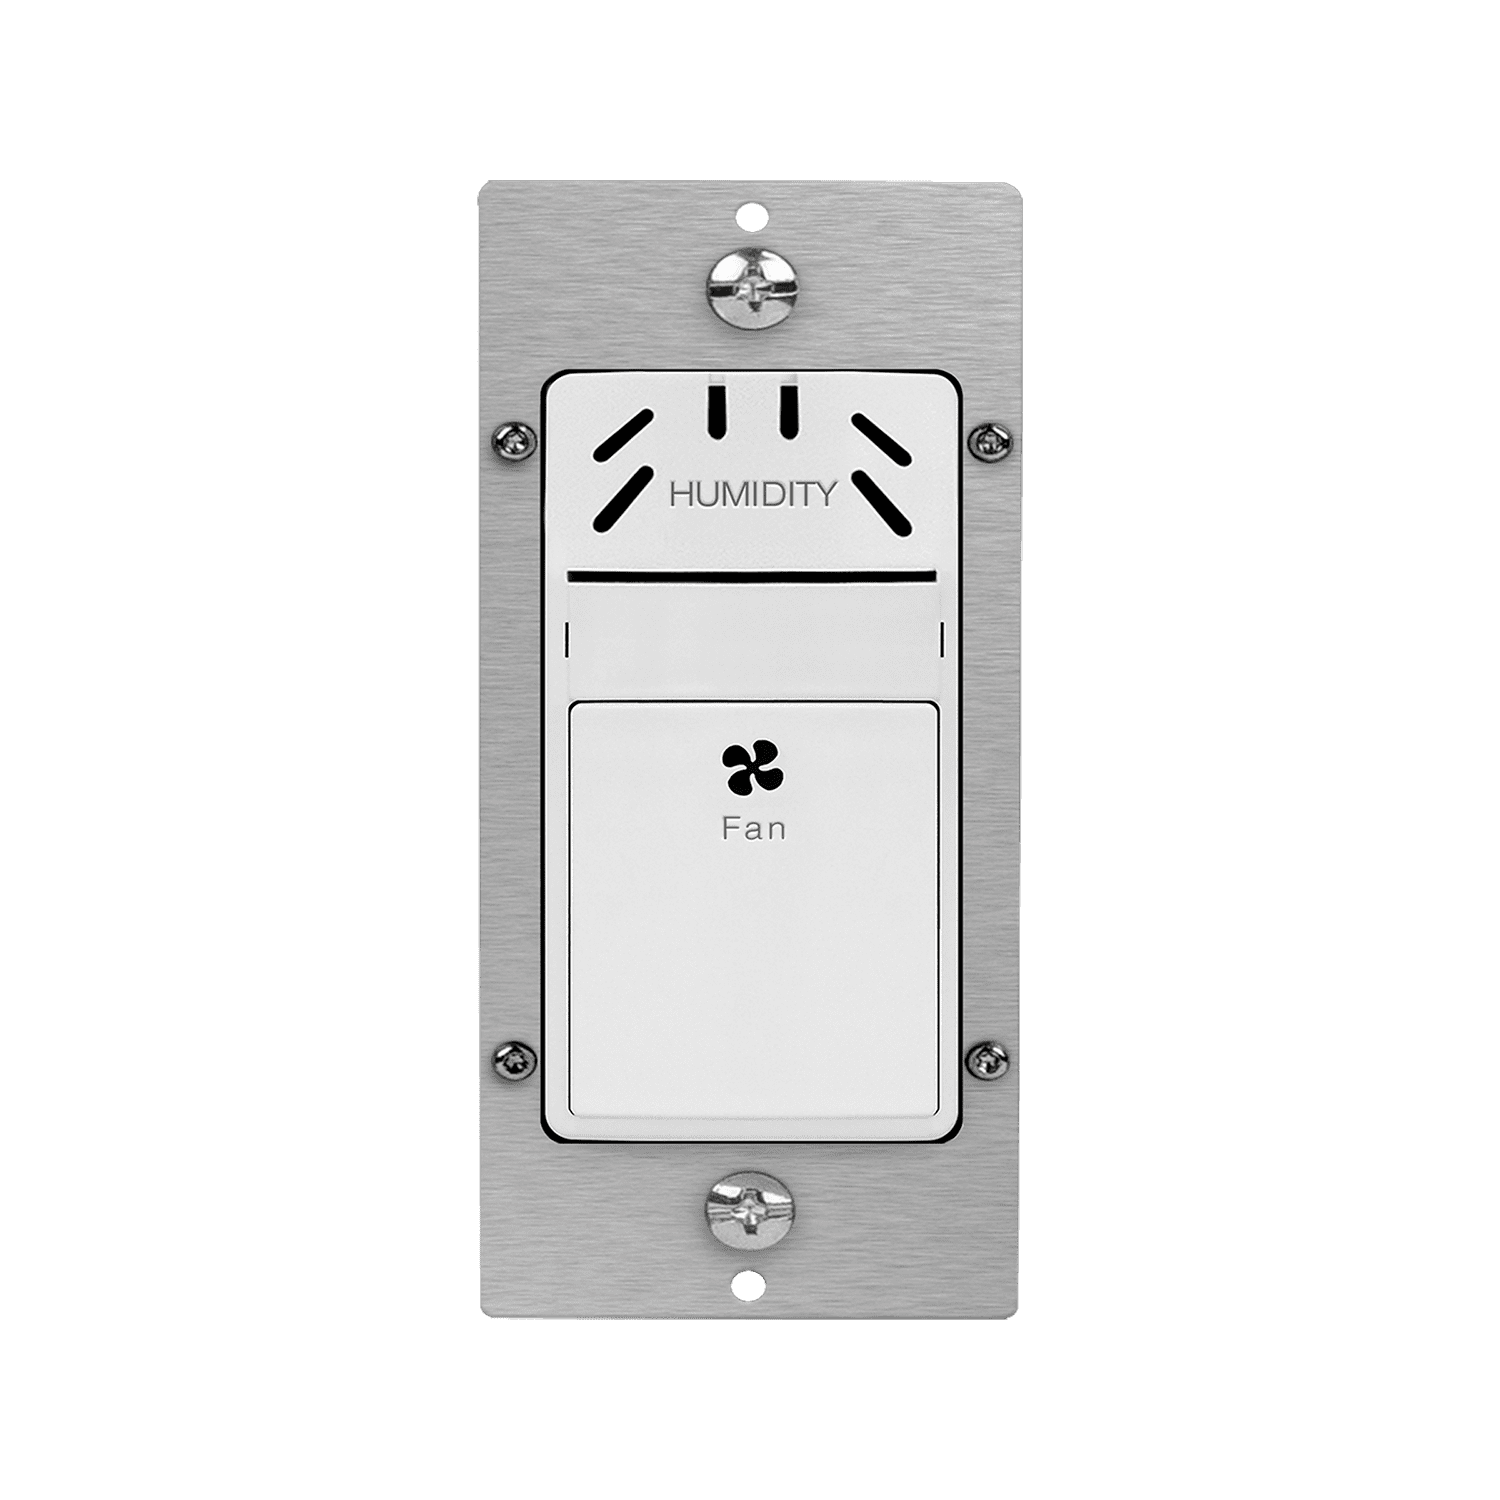 in wall humidity sensor switch fan exhaust control white